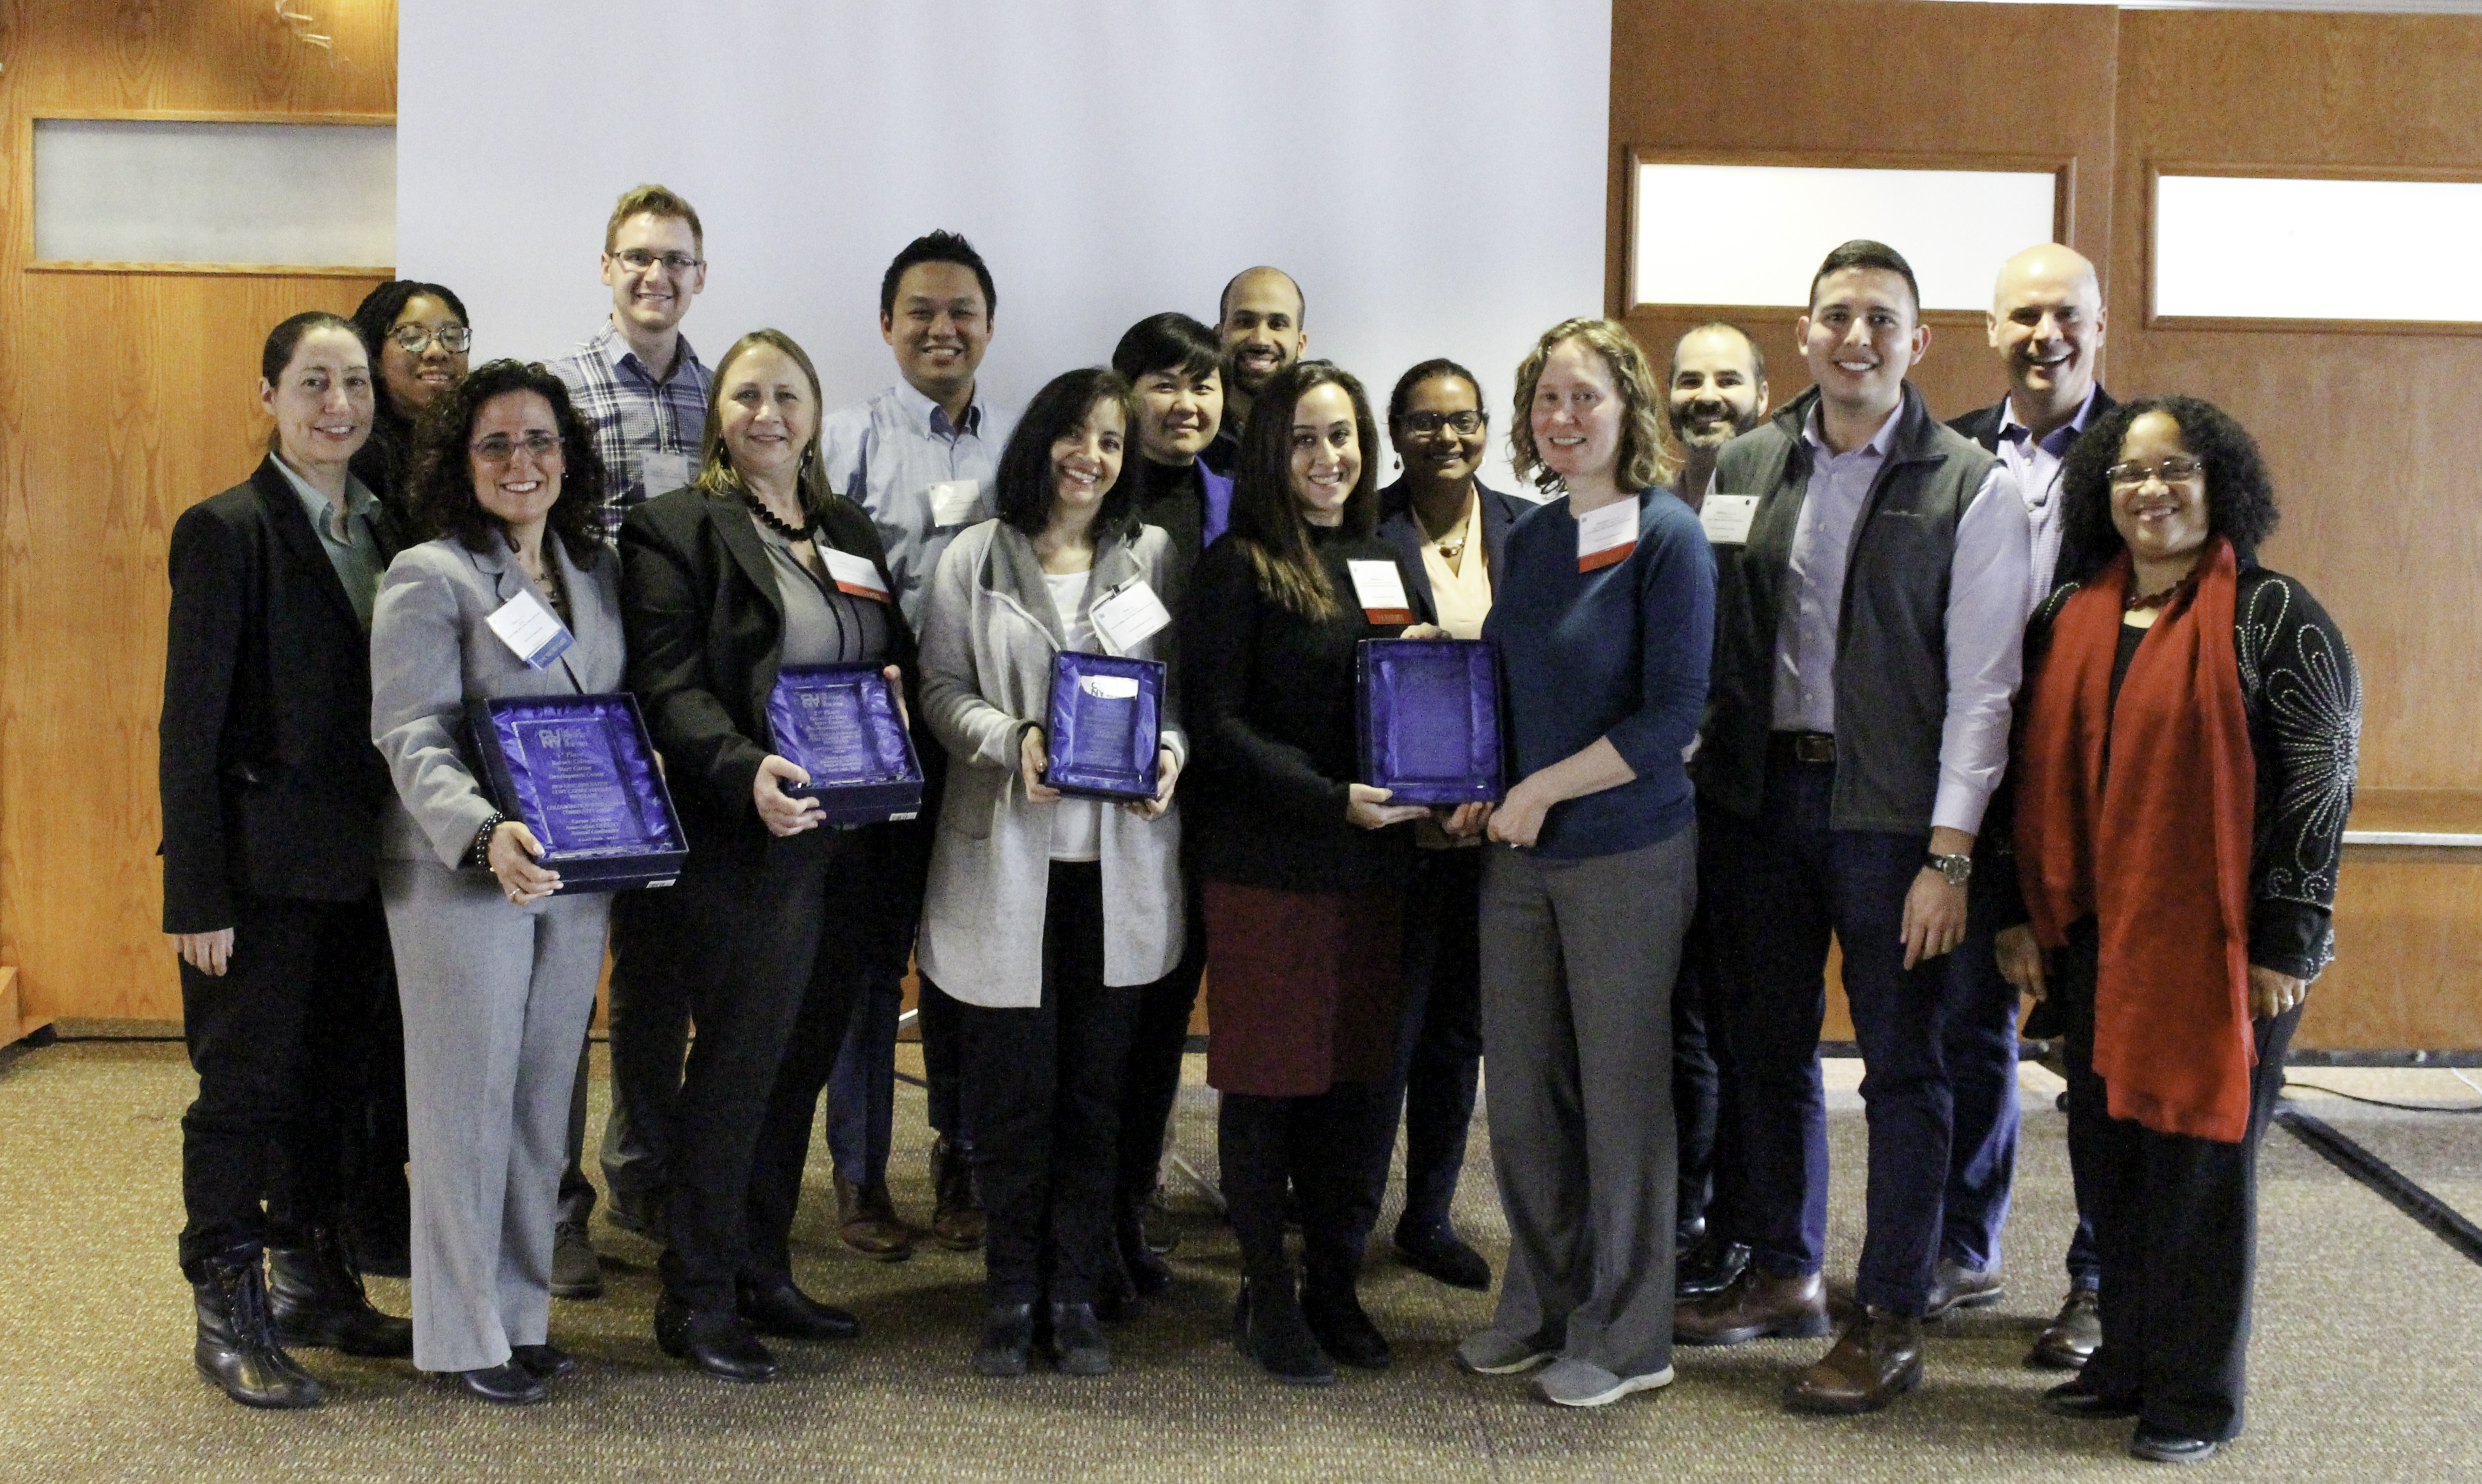 Baruch College career centers received top honors at The City University of New York's Career Services Association awards program.